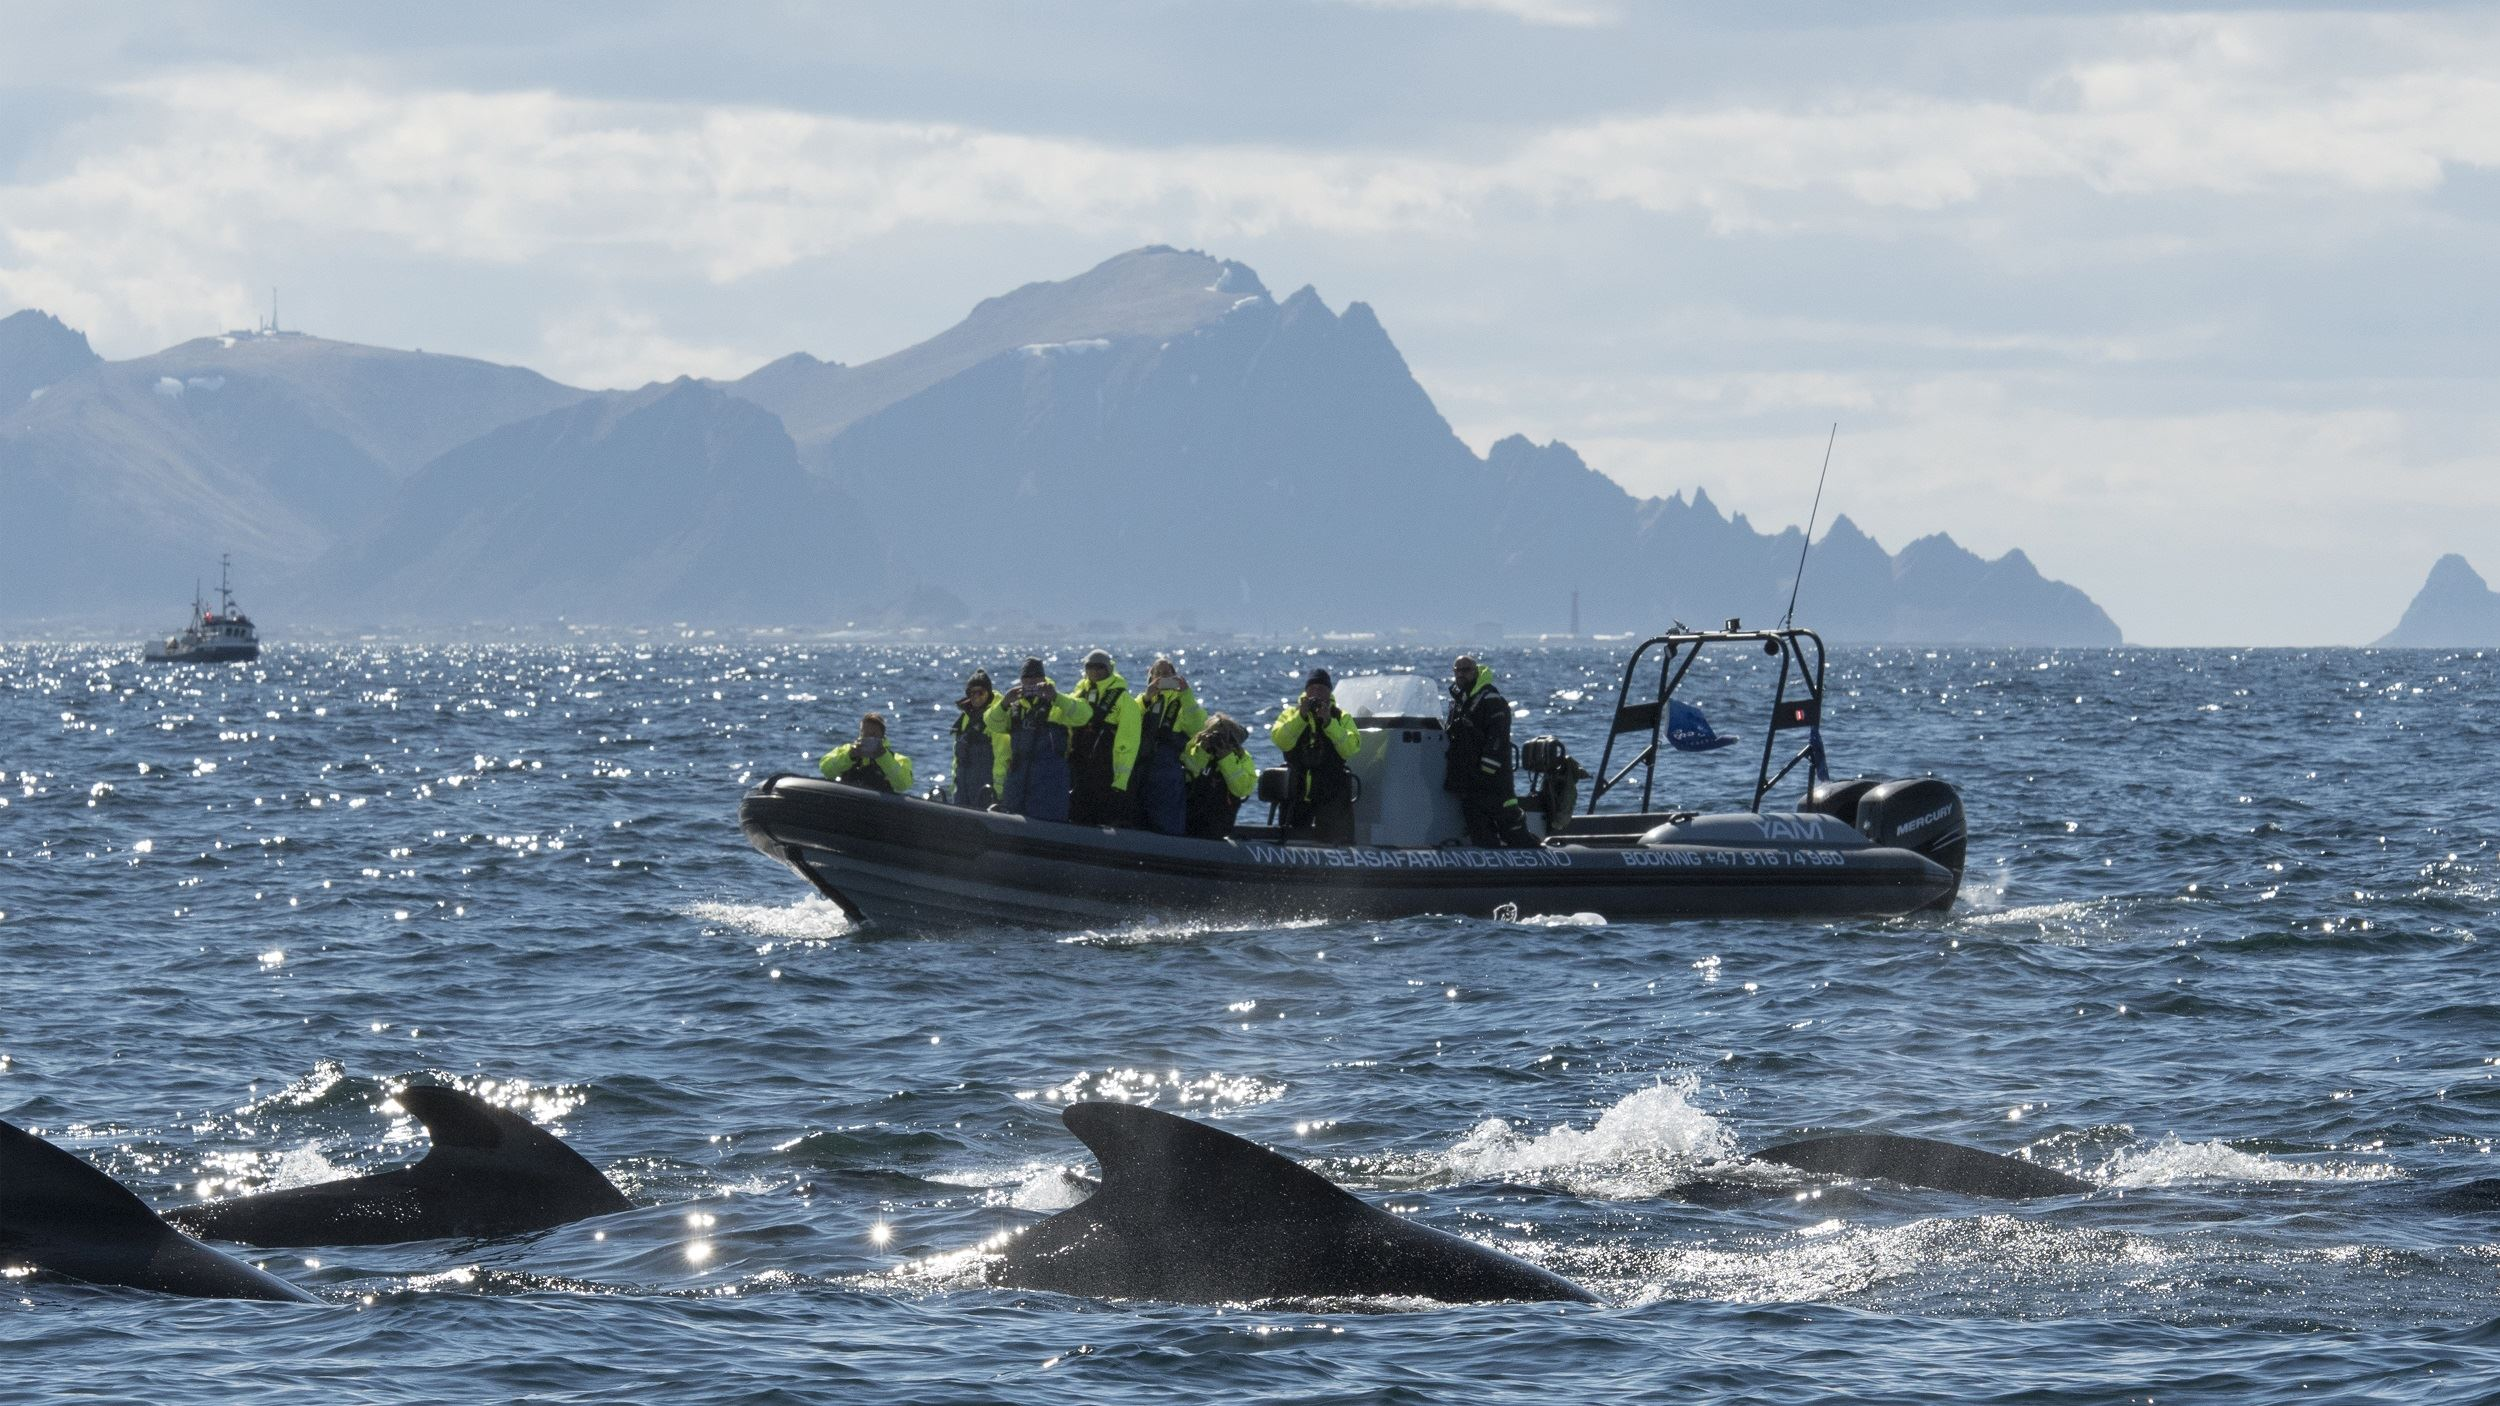 Whale Watching with Sea Safari Andenes